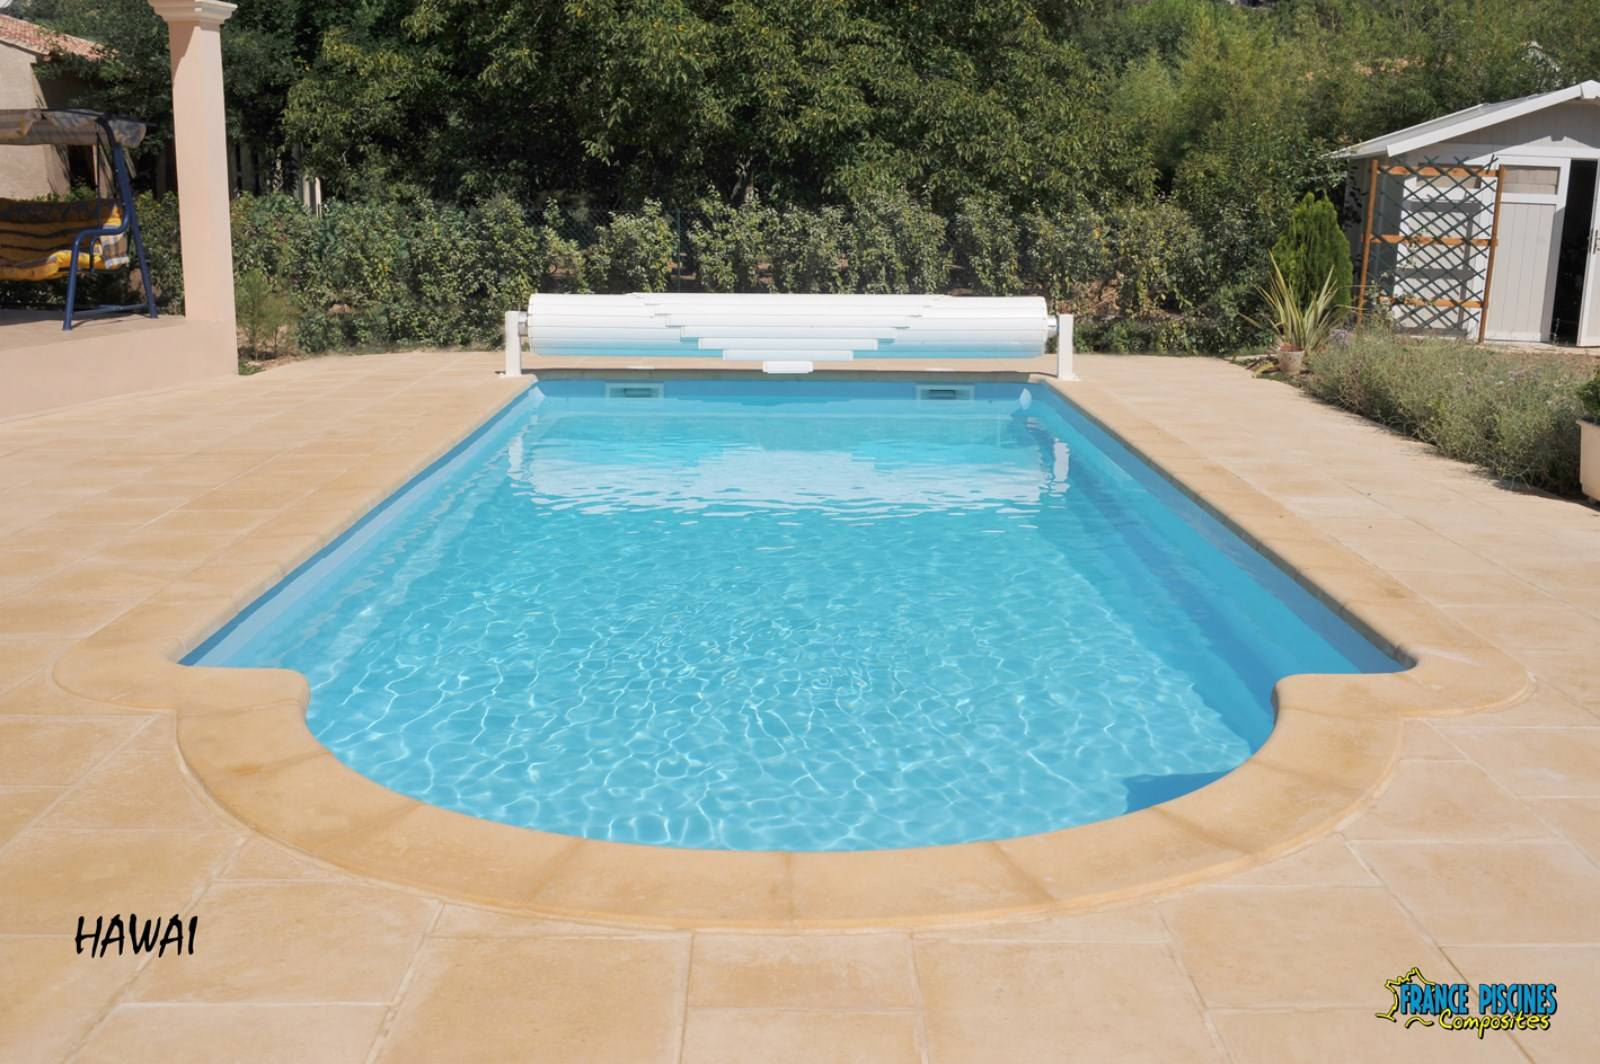 Vente et pose de piscine enterr e coque polyester for Prix piscine coque polyester 8x4